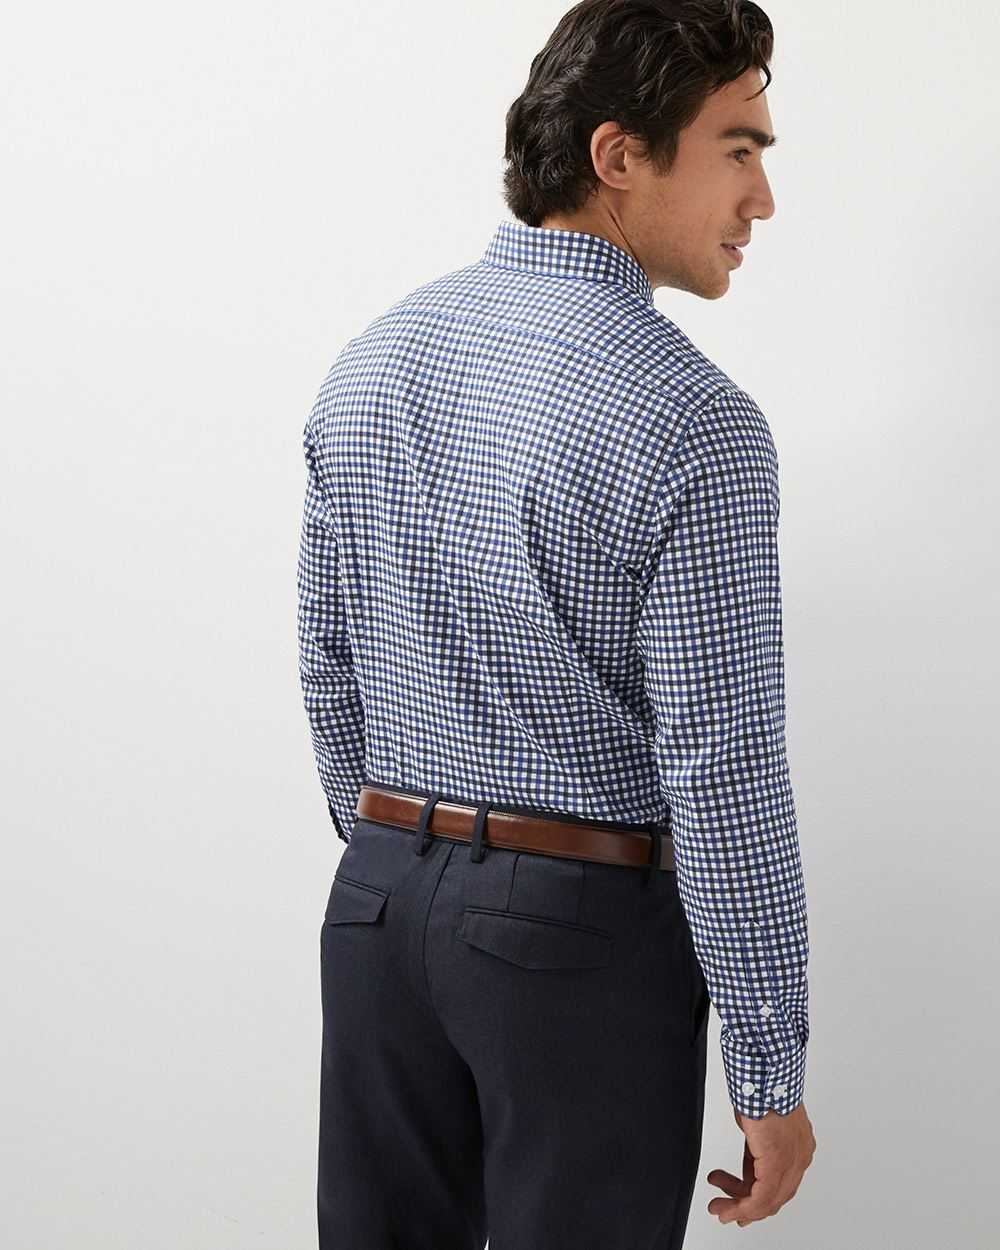 Athletic fit dobby check dress shirt